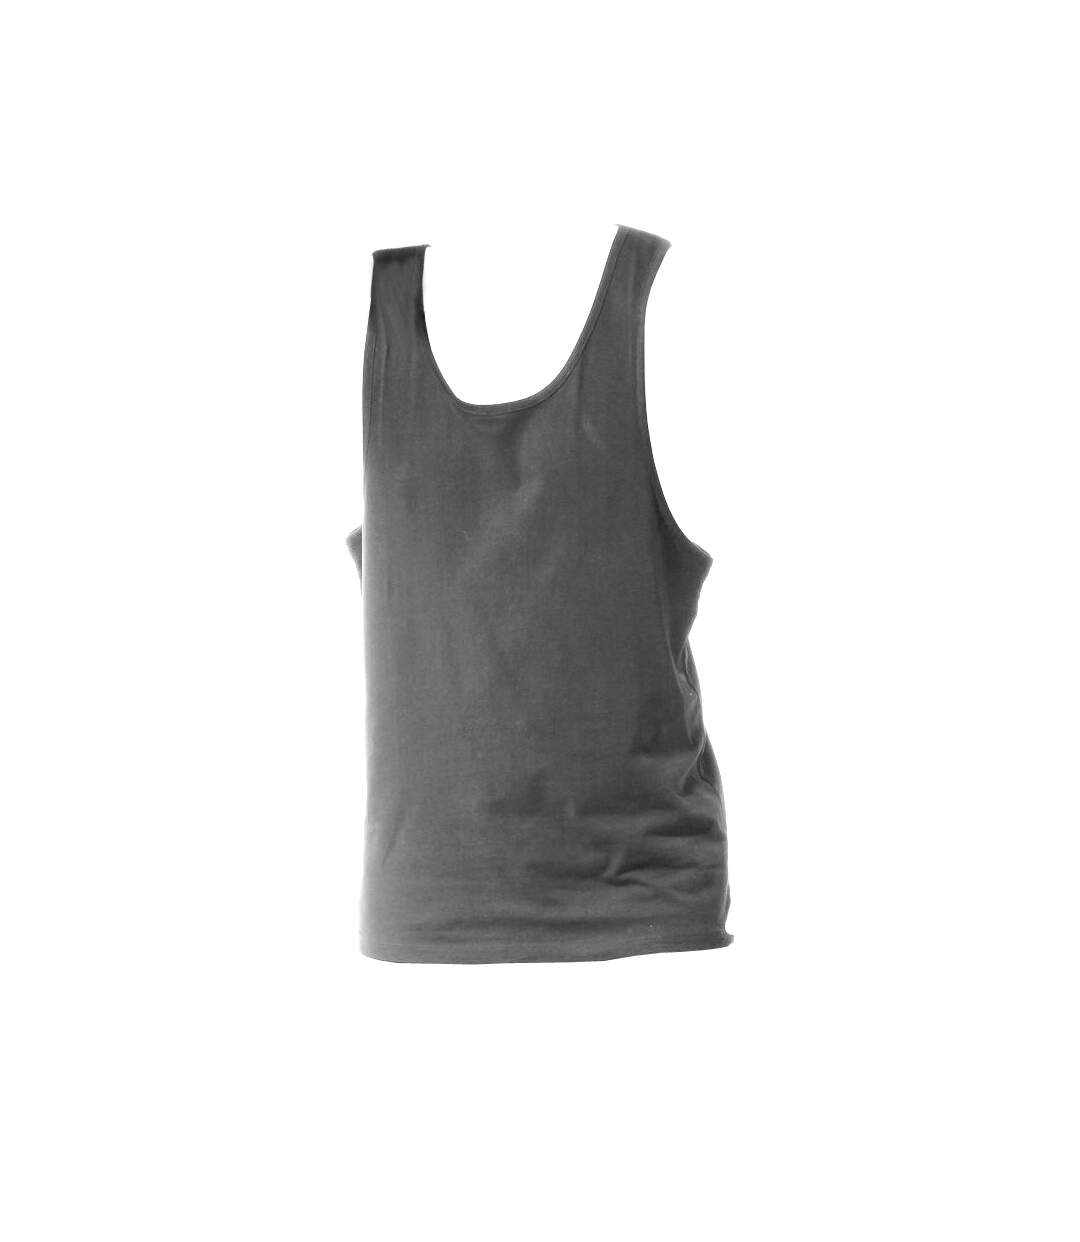 Tanx Mens Vest Sleeveless Vest Top / Muscle Vest (Heather Grey) - UTRW2869